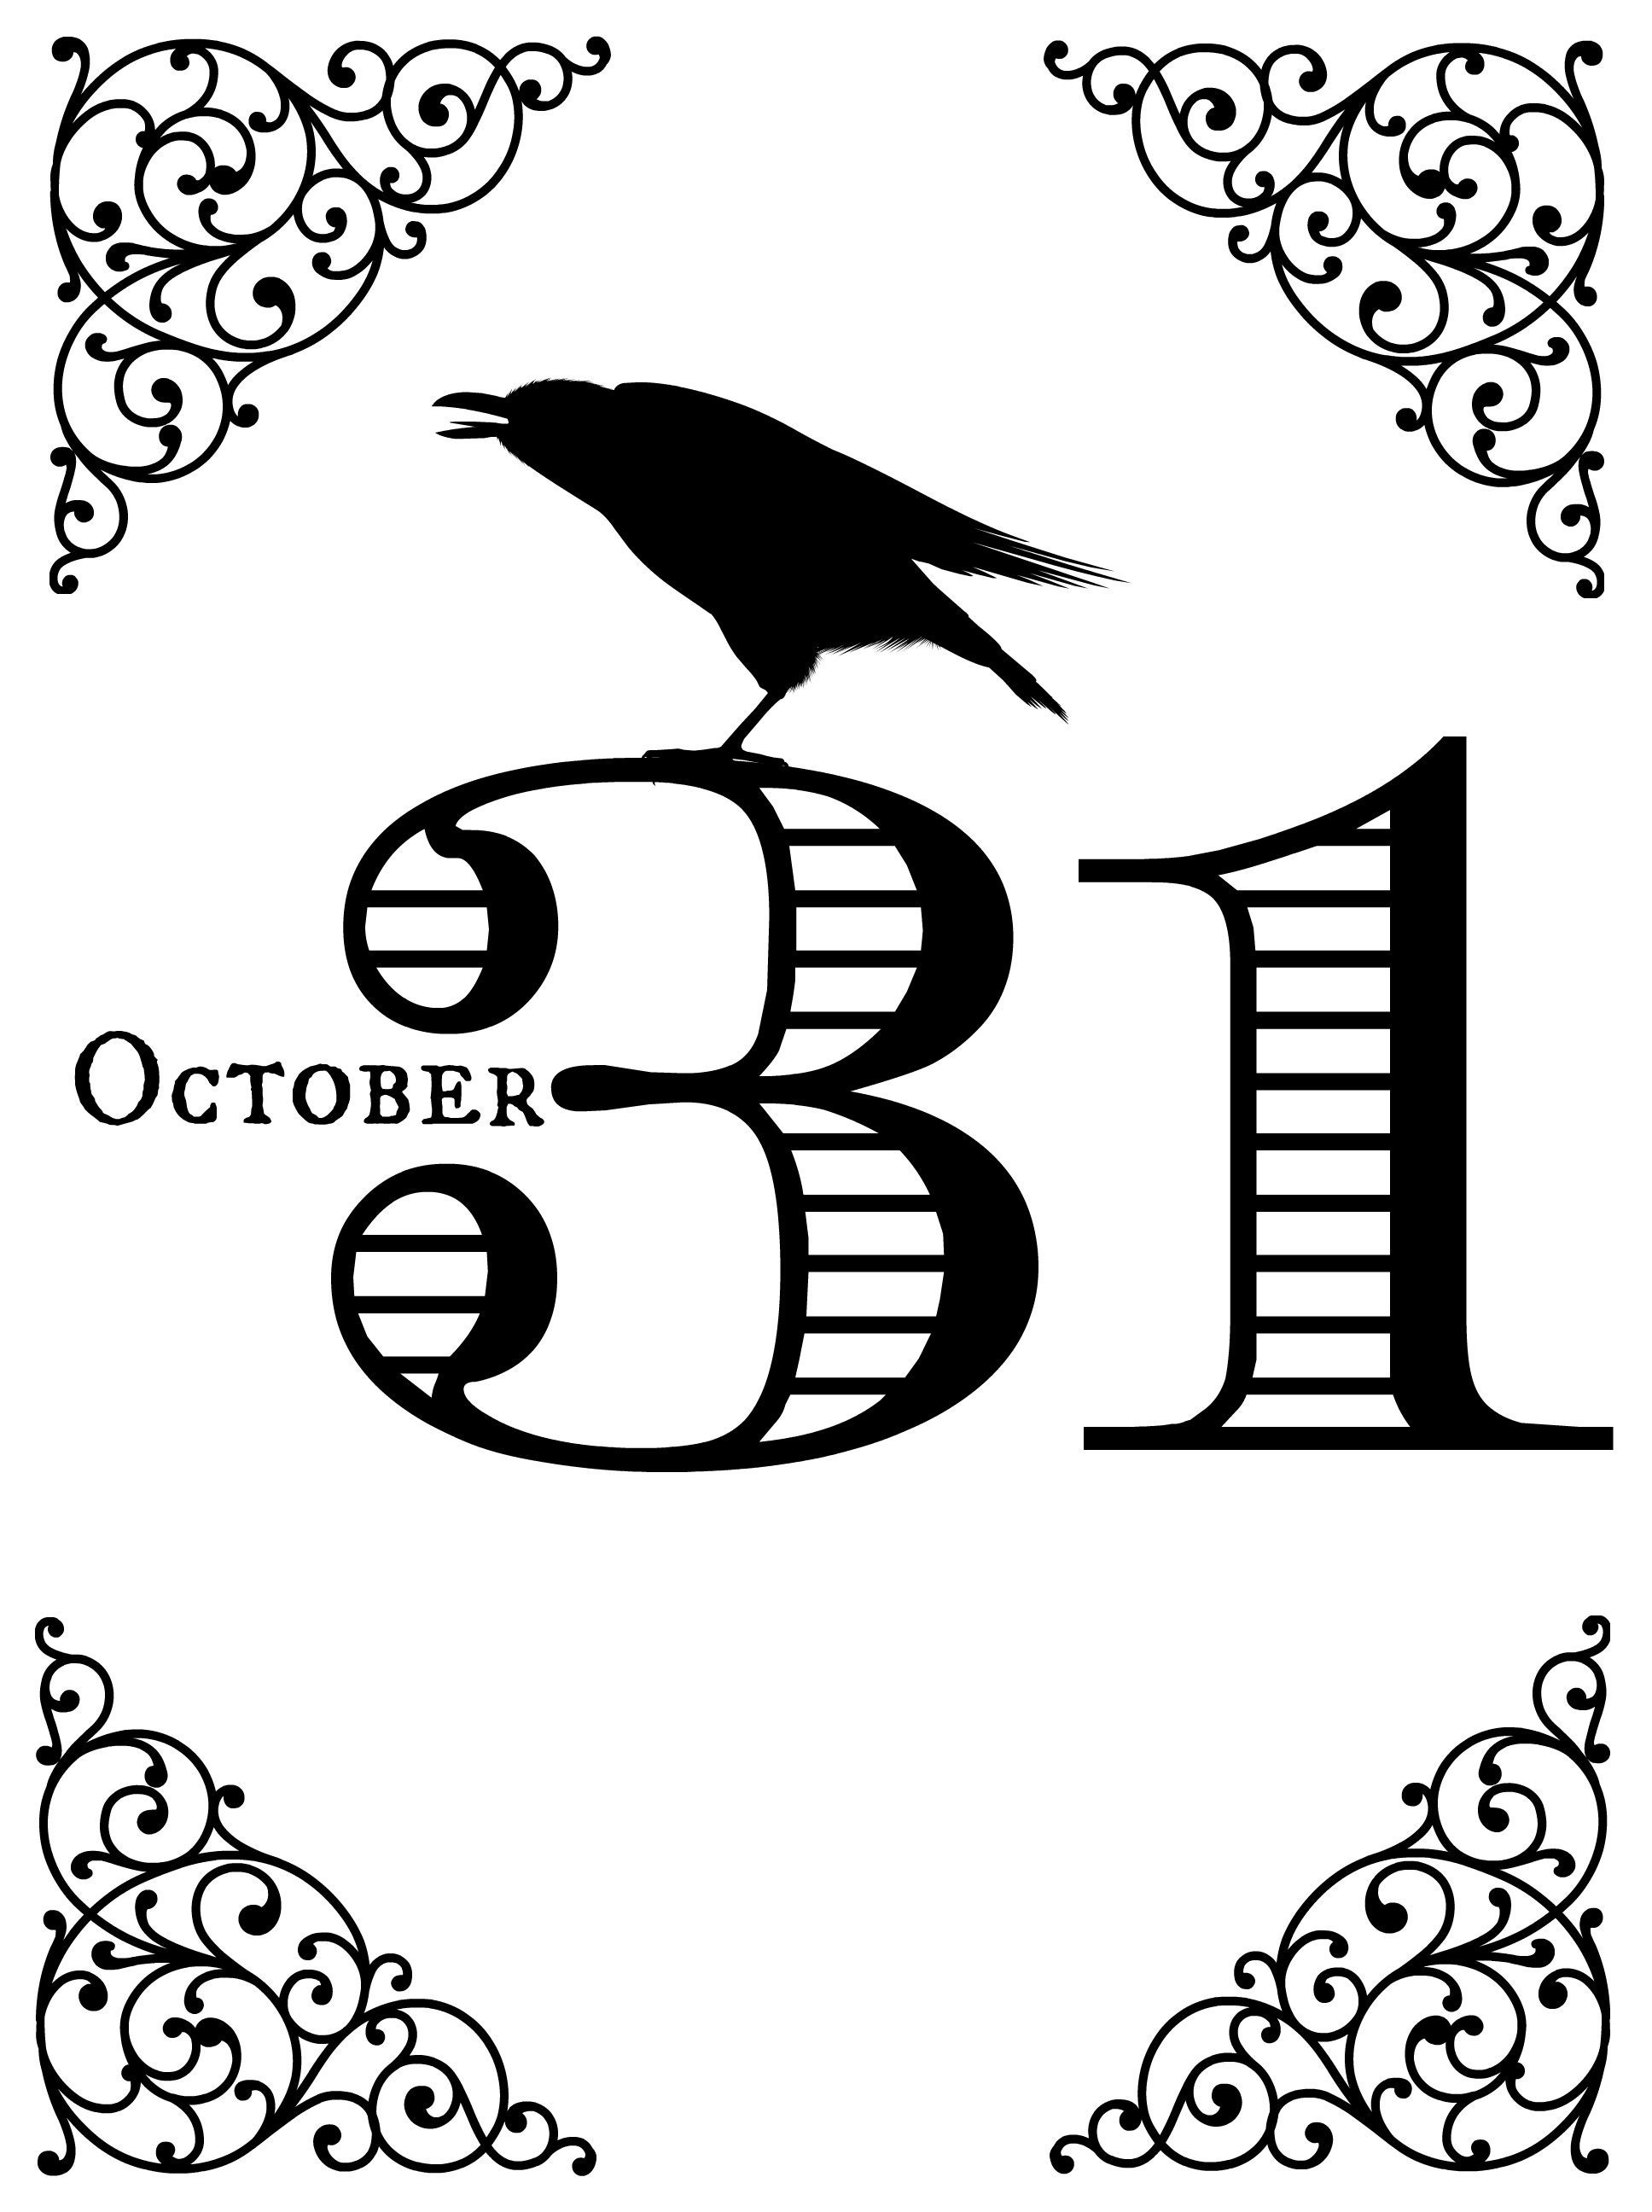 image relating to Vintage Halloween Printable called Absolutely free Basic Halloween Printables, Tablescape and Some Enjoyment Guidelines